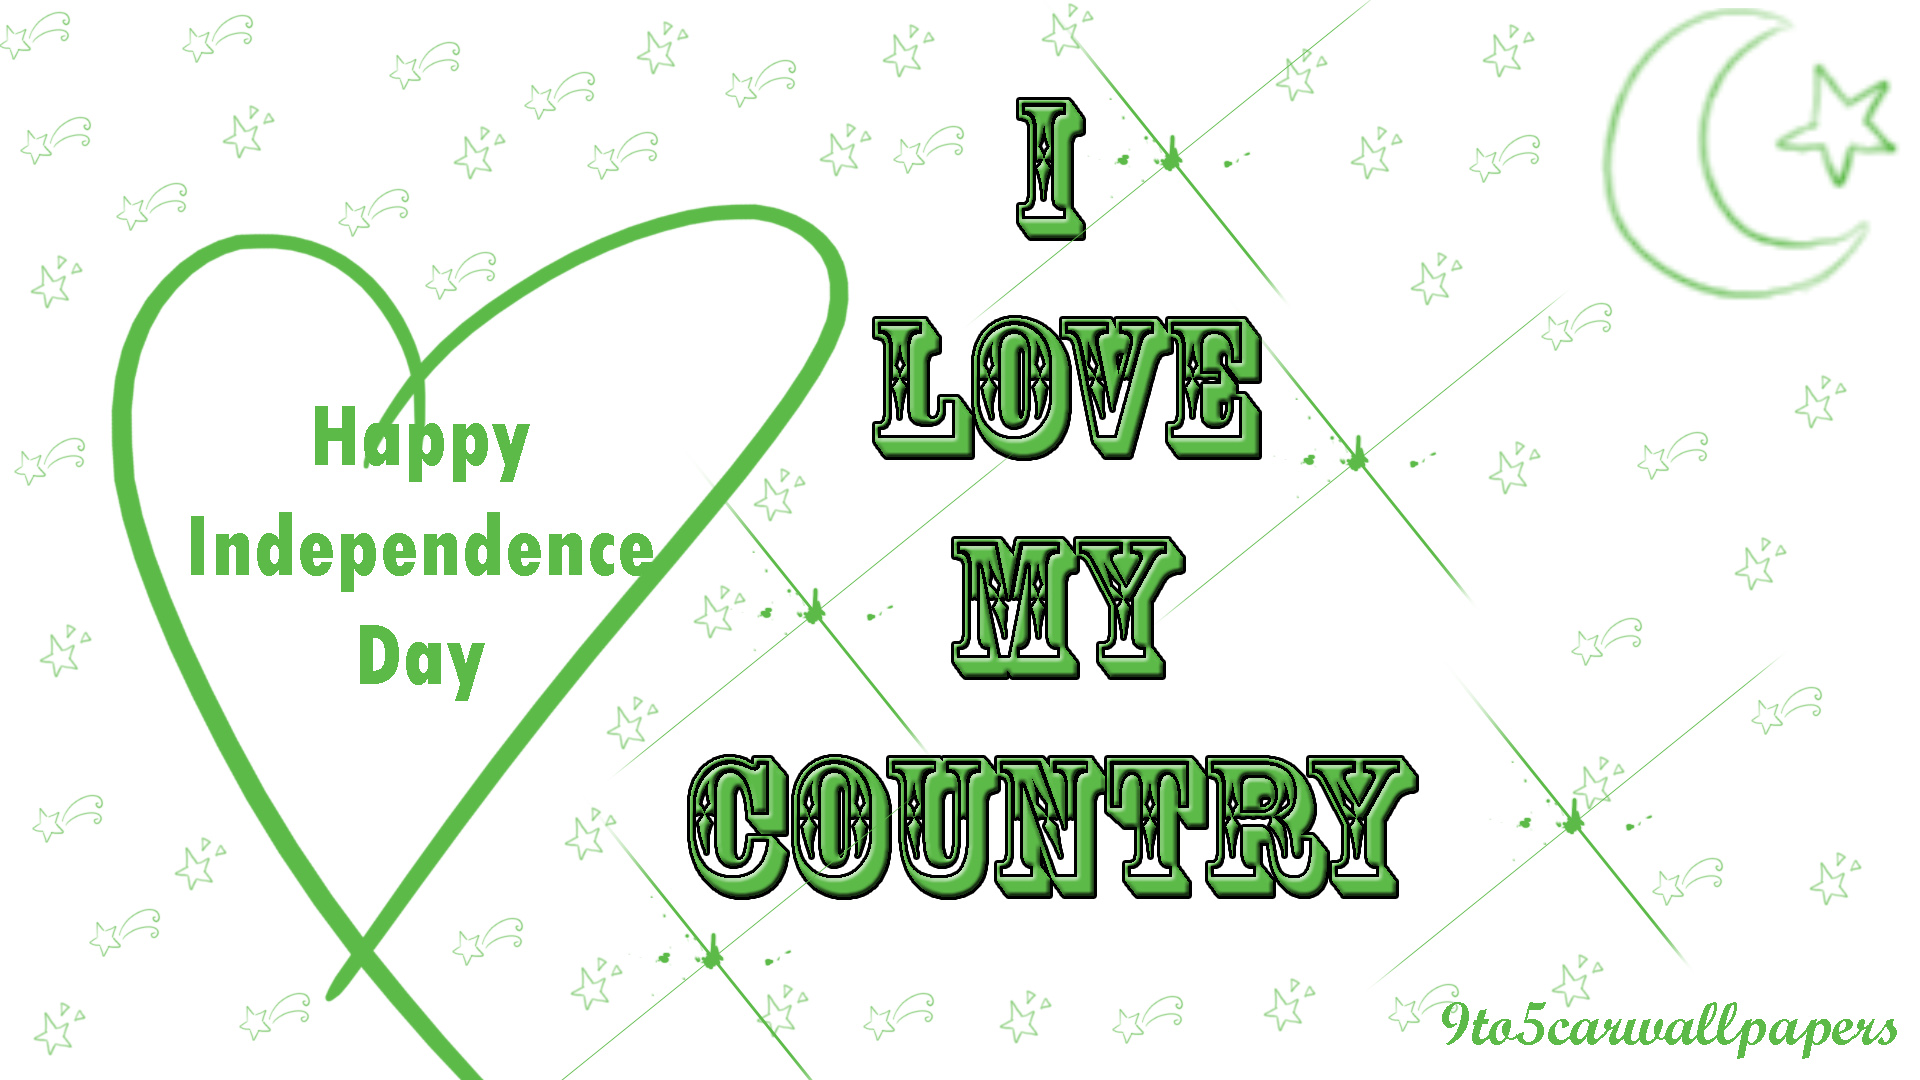 independence-day wallpaper-image-quotes-cards-posters-wishCards